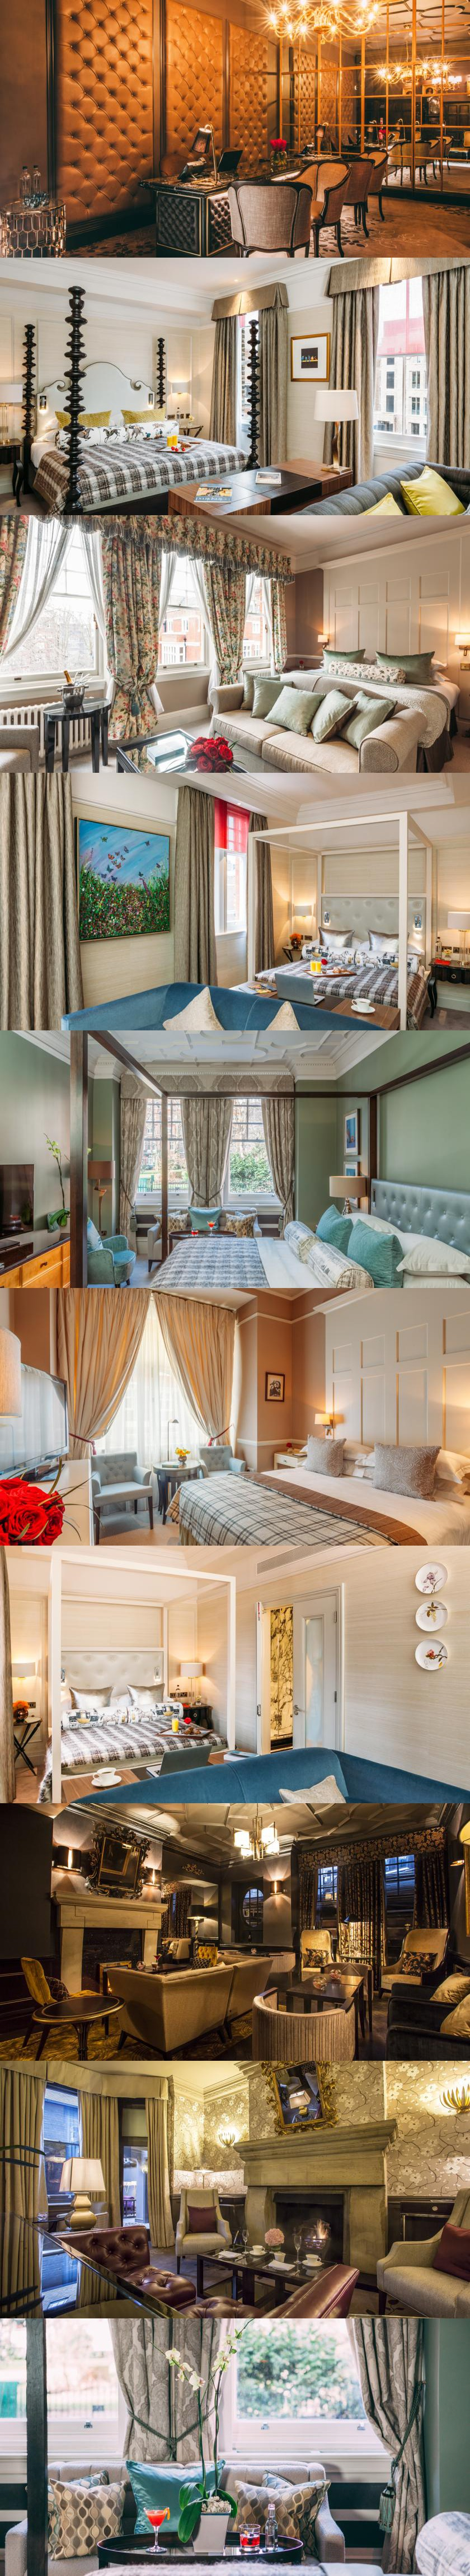 No.11 Cadogan Gardens. A member of Small Luxury Hotels of the World™, this 5-star hotel offers gourmet breakfasts and boutique bedrooms with marble bathrooms. No.11 Cadogan Gardens is just off Sloane Square and a 10-minute walk from Knightsbridge. #London